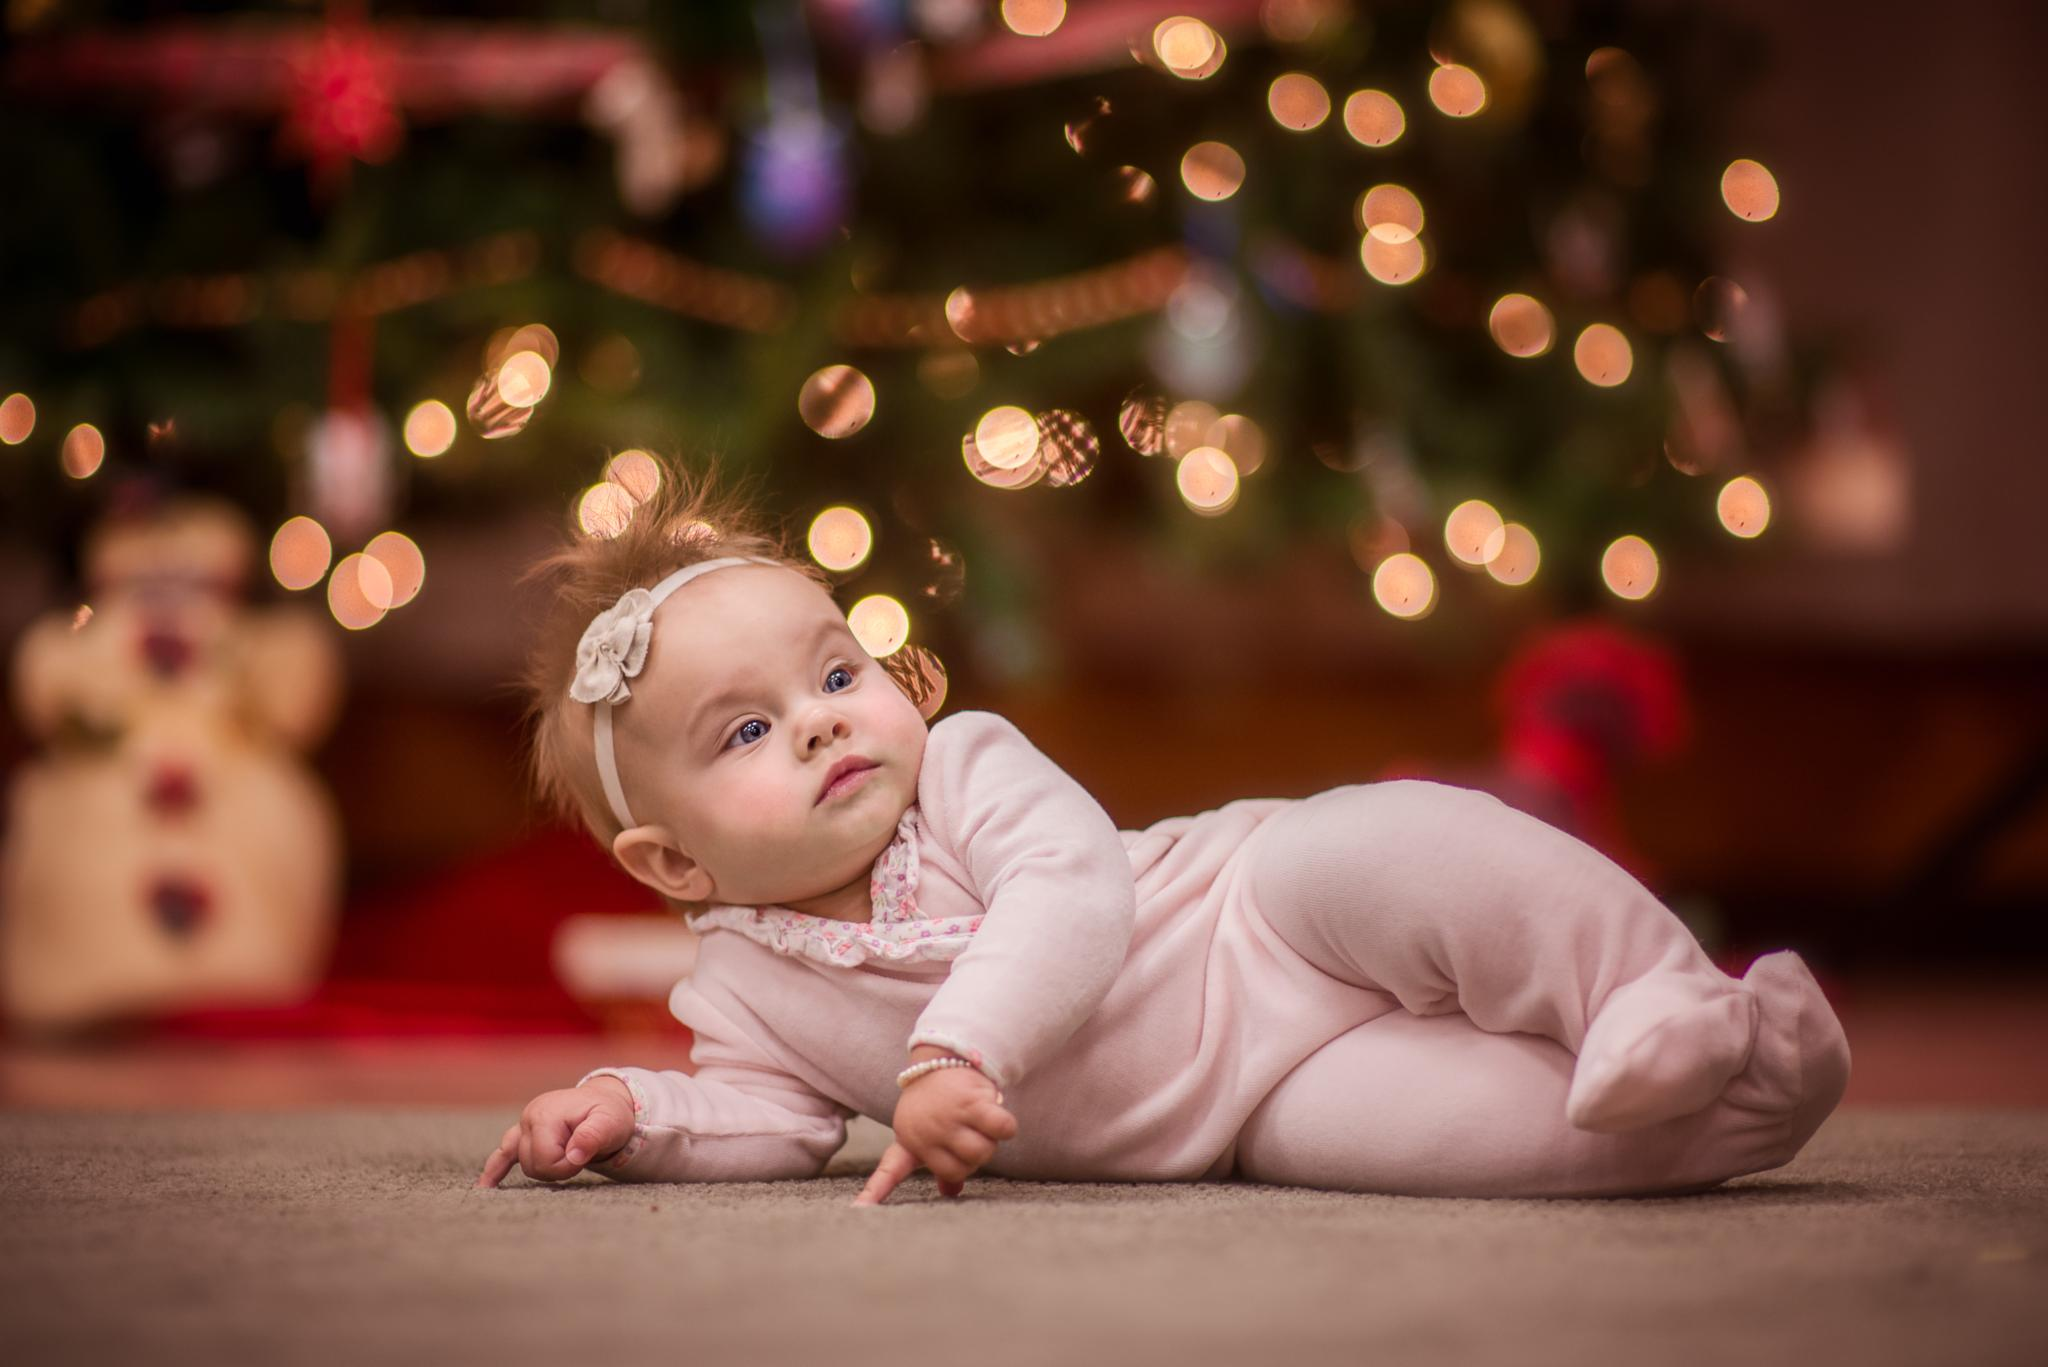 The baby pose by TerryLynn